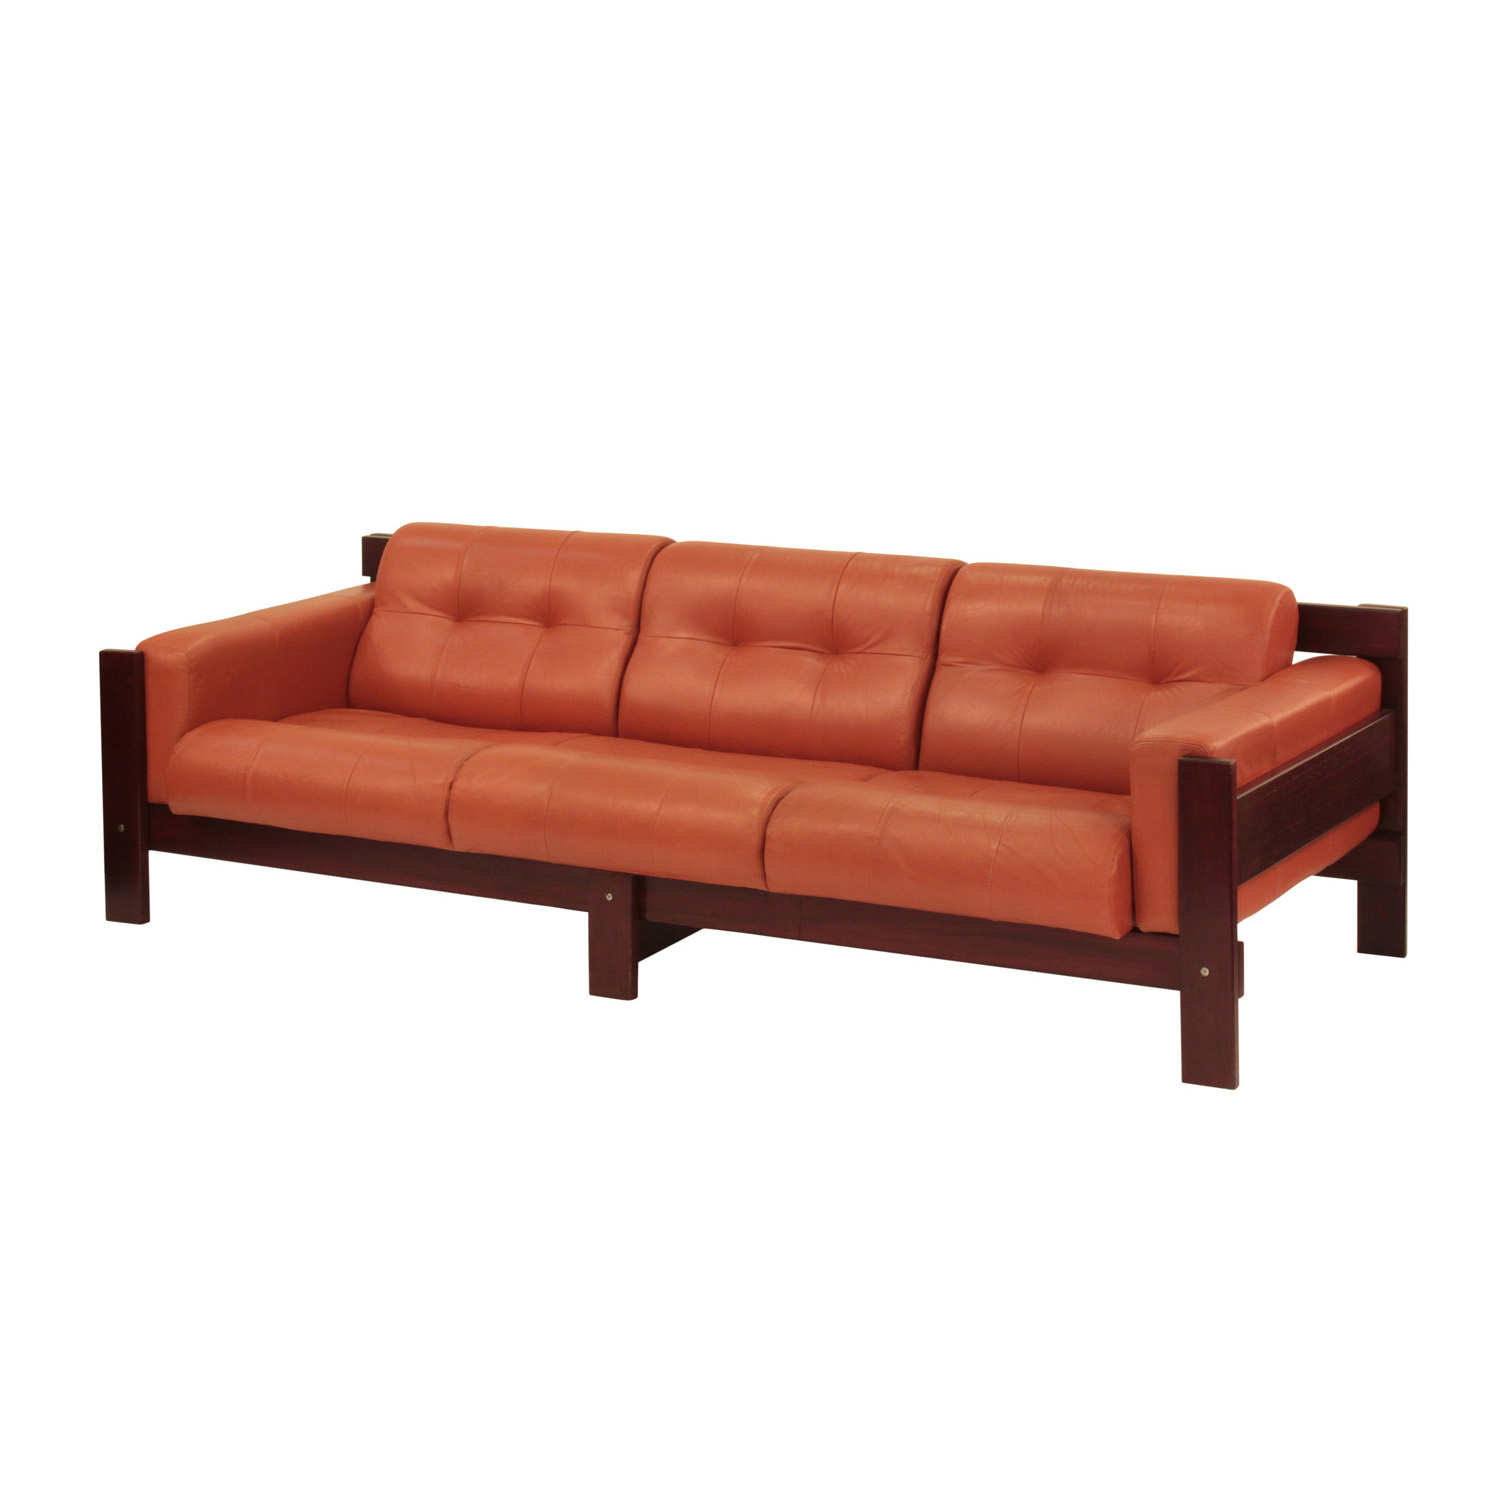 Percival Lafer Sofa In Rosewood With